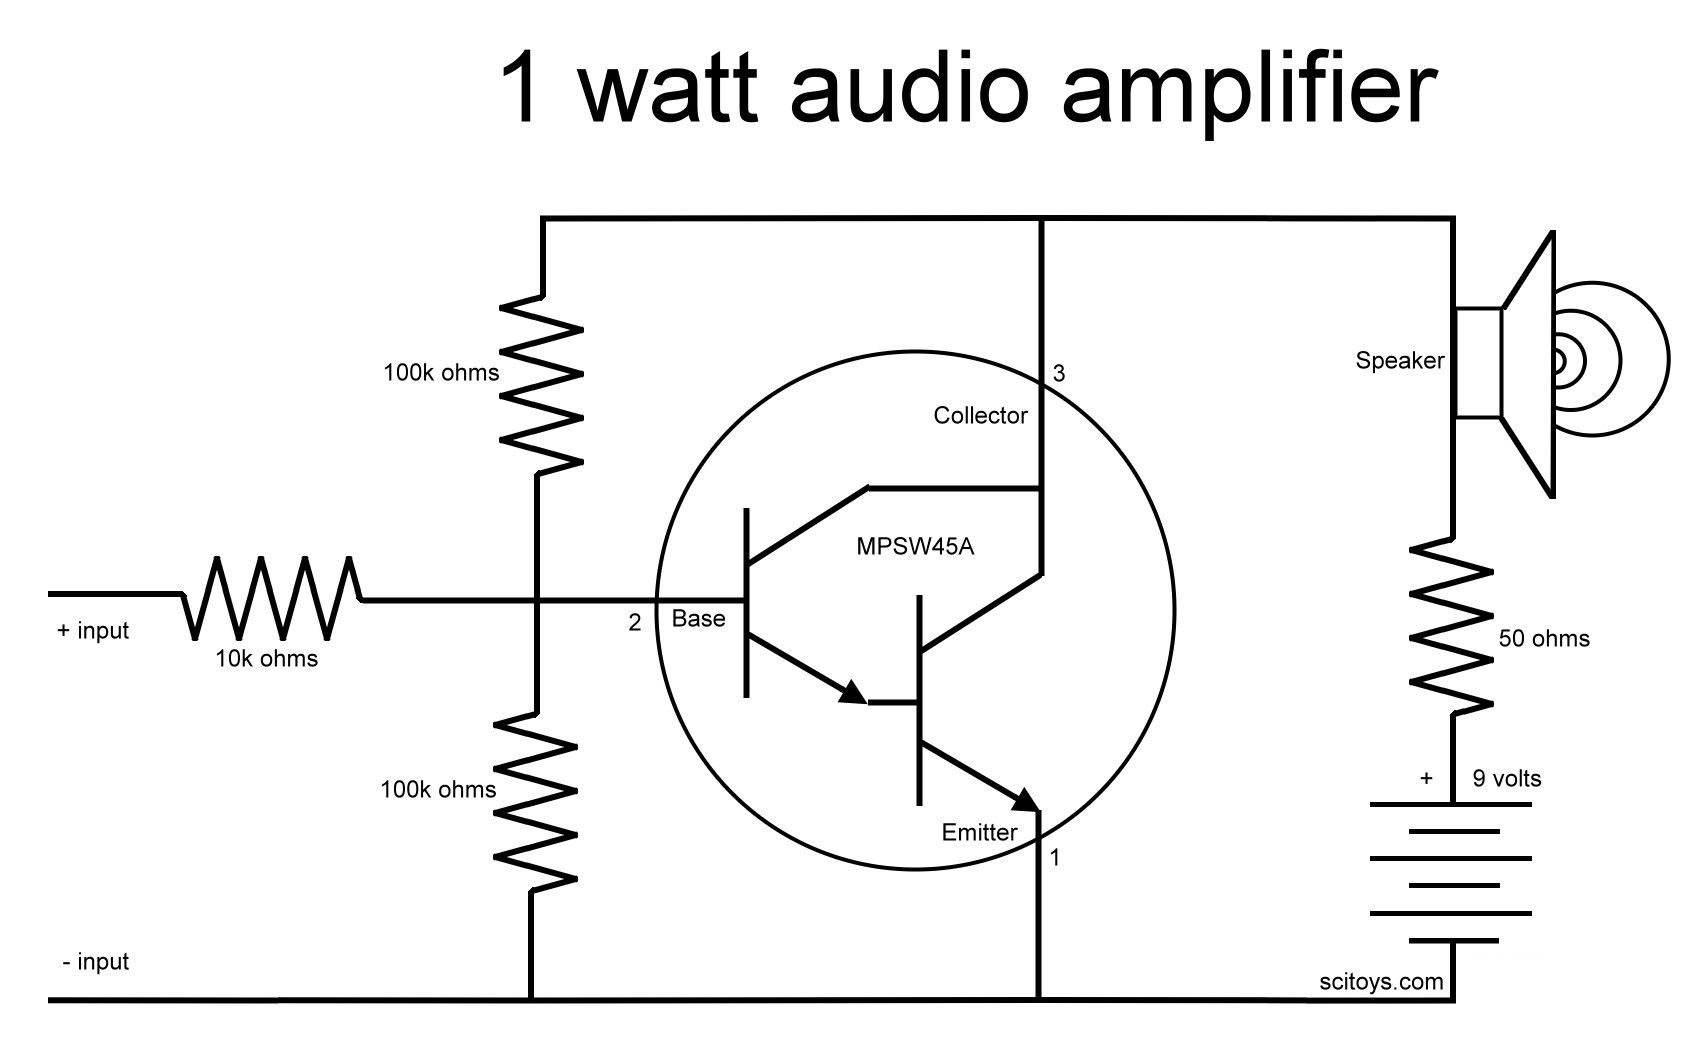 Watt Audio  Amplifier  Electrical  Electronics